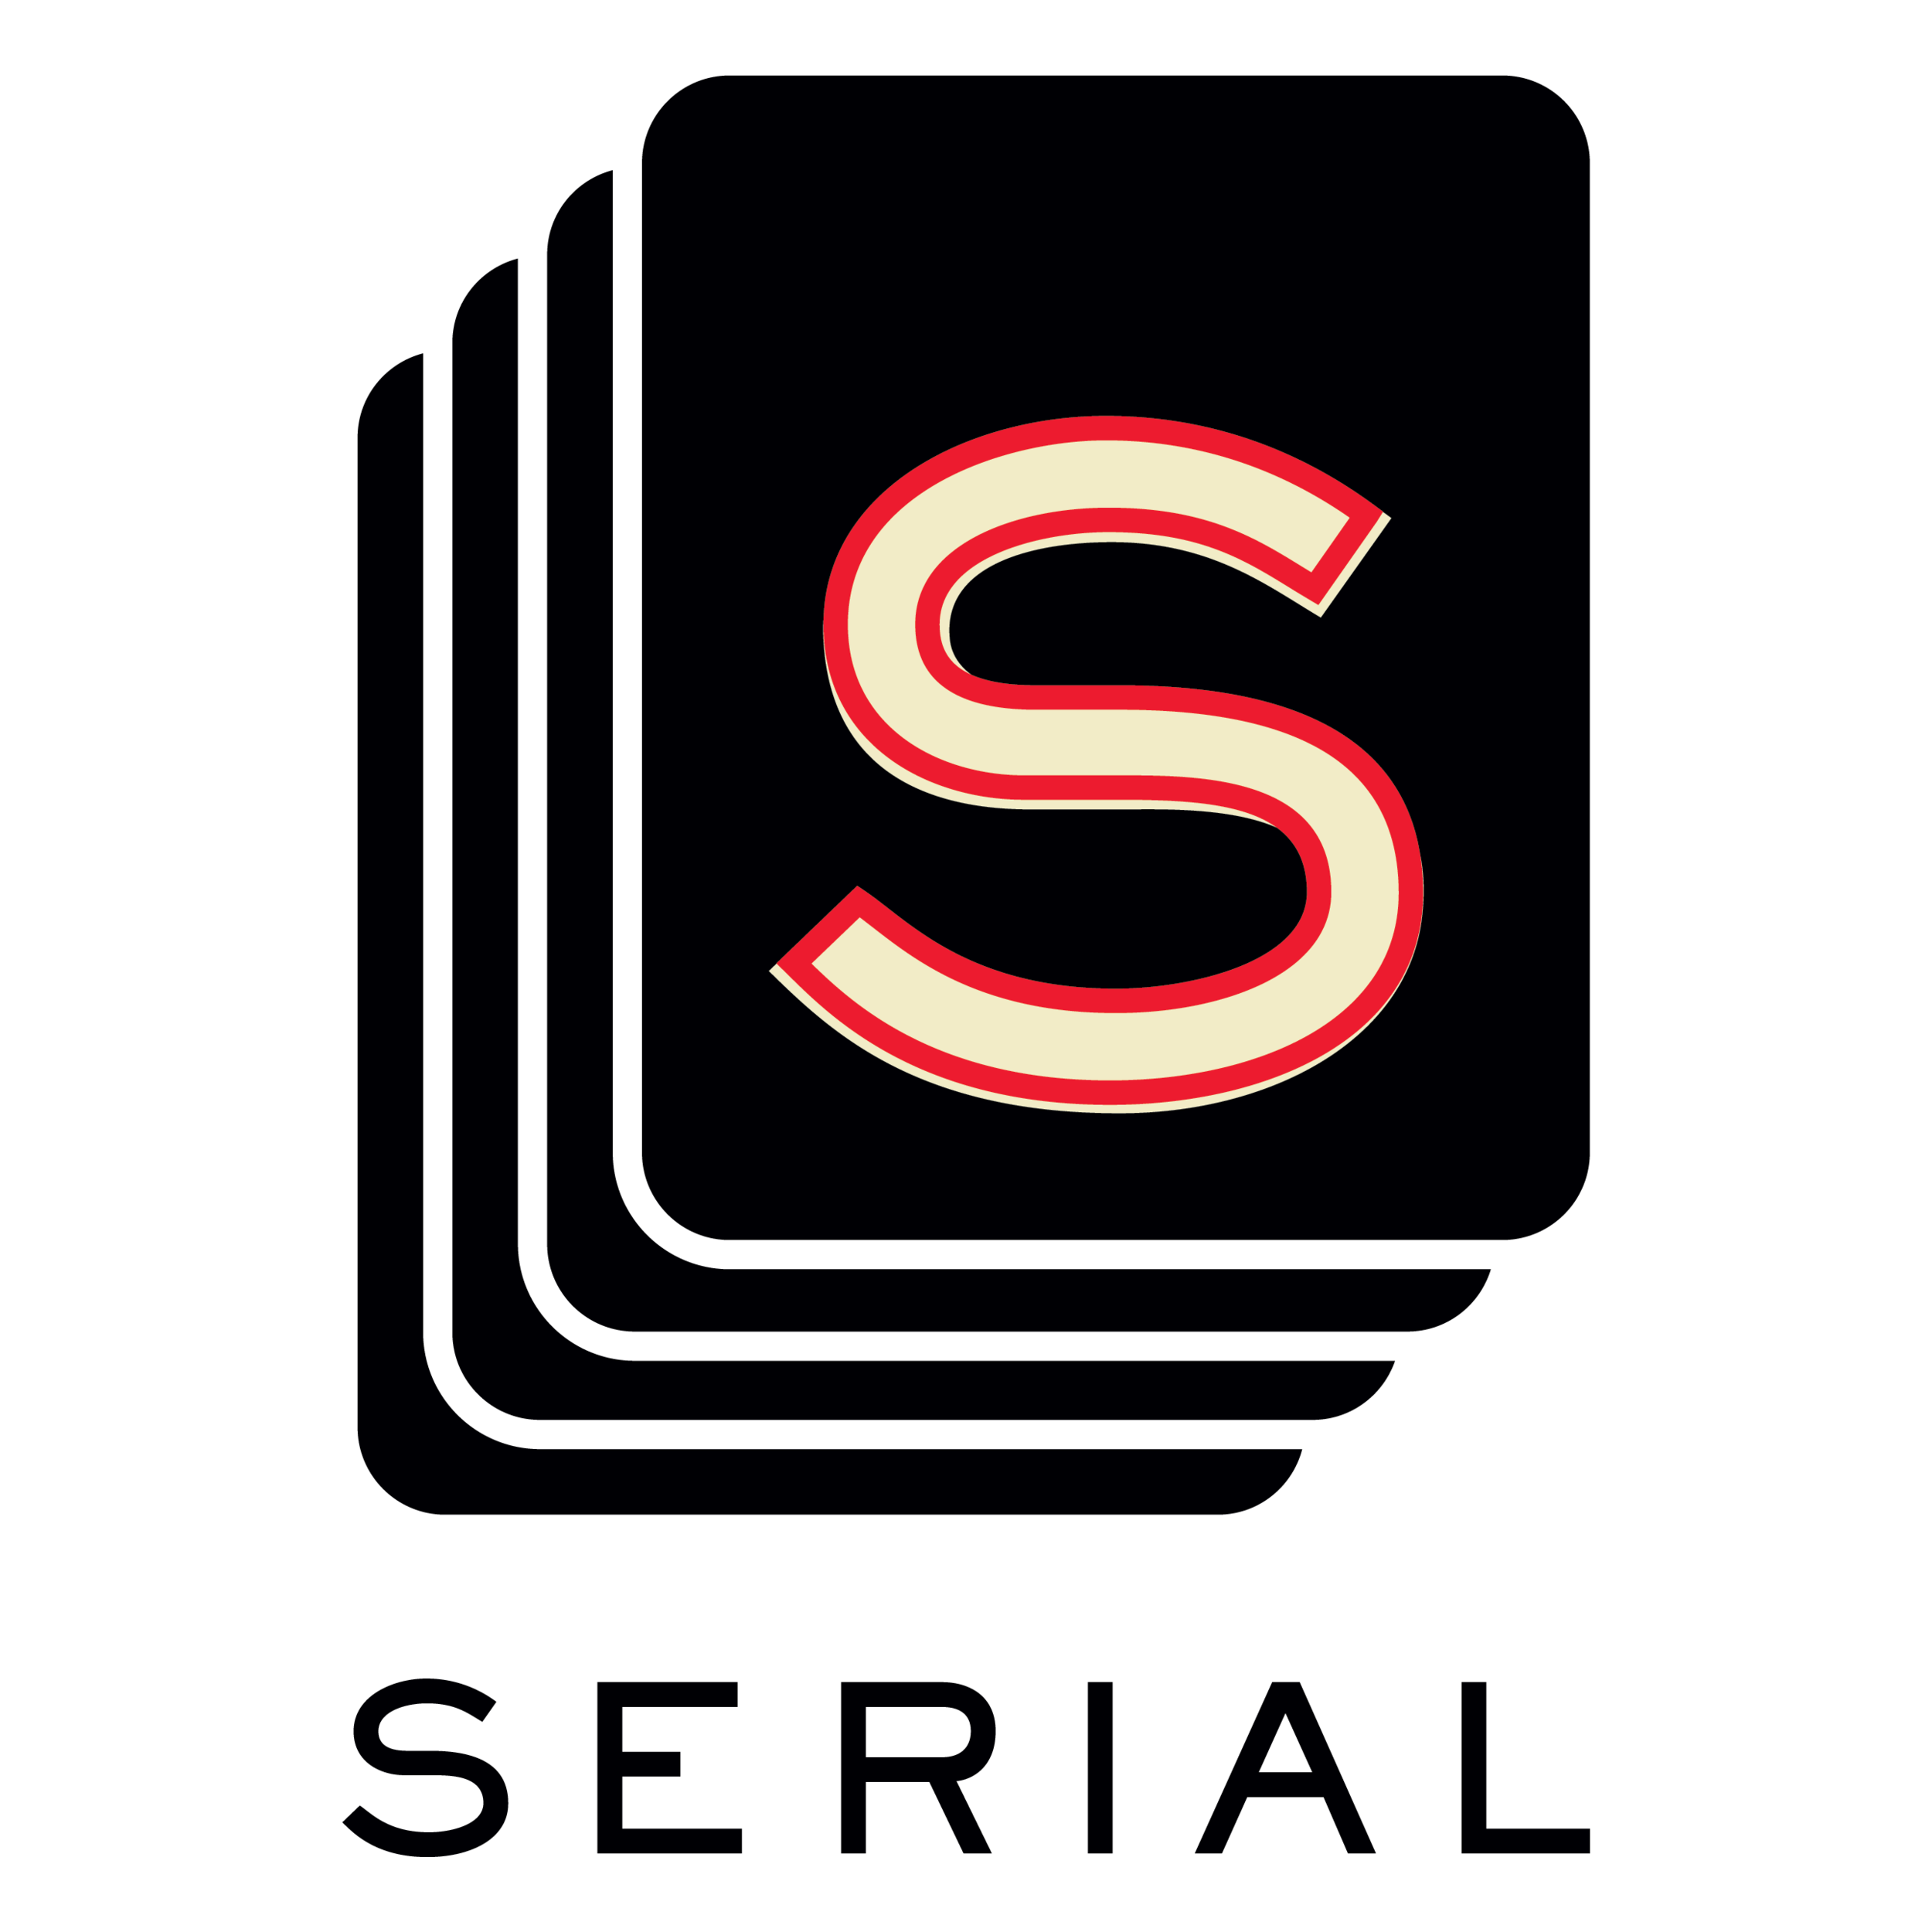 Serial is arguably one of podcasting's greatest hits and one that got us hooked into the medium a year ago. - Serial is a podcast from the creators of This American Life, hosted by Sarah Koenig. Serial unfolds one story - a true story - over the course of a whole season. The show follows the plot and characters wherever they lead, through many surprising twists and turns. Sarah won't know what happens at the end of the story until she gets there, not long before you get there with her.